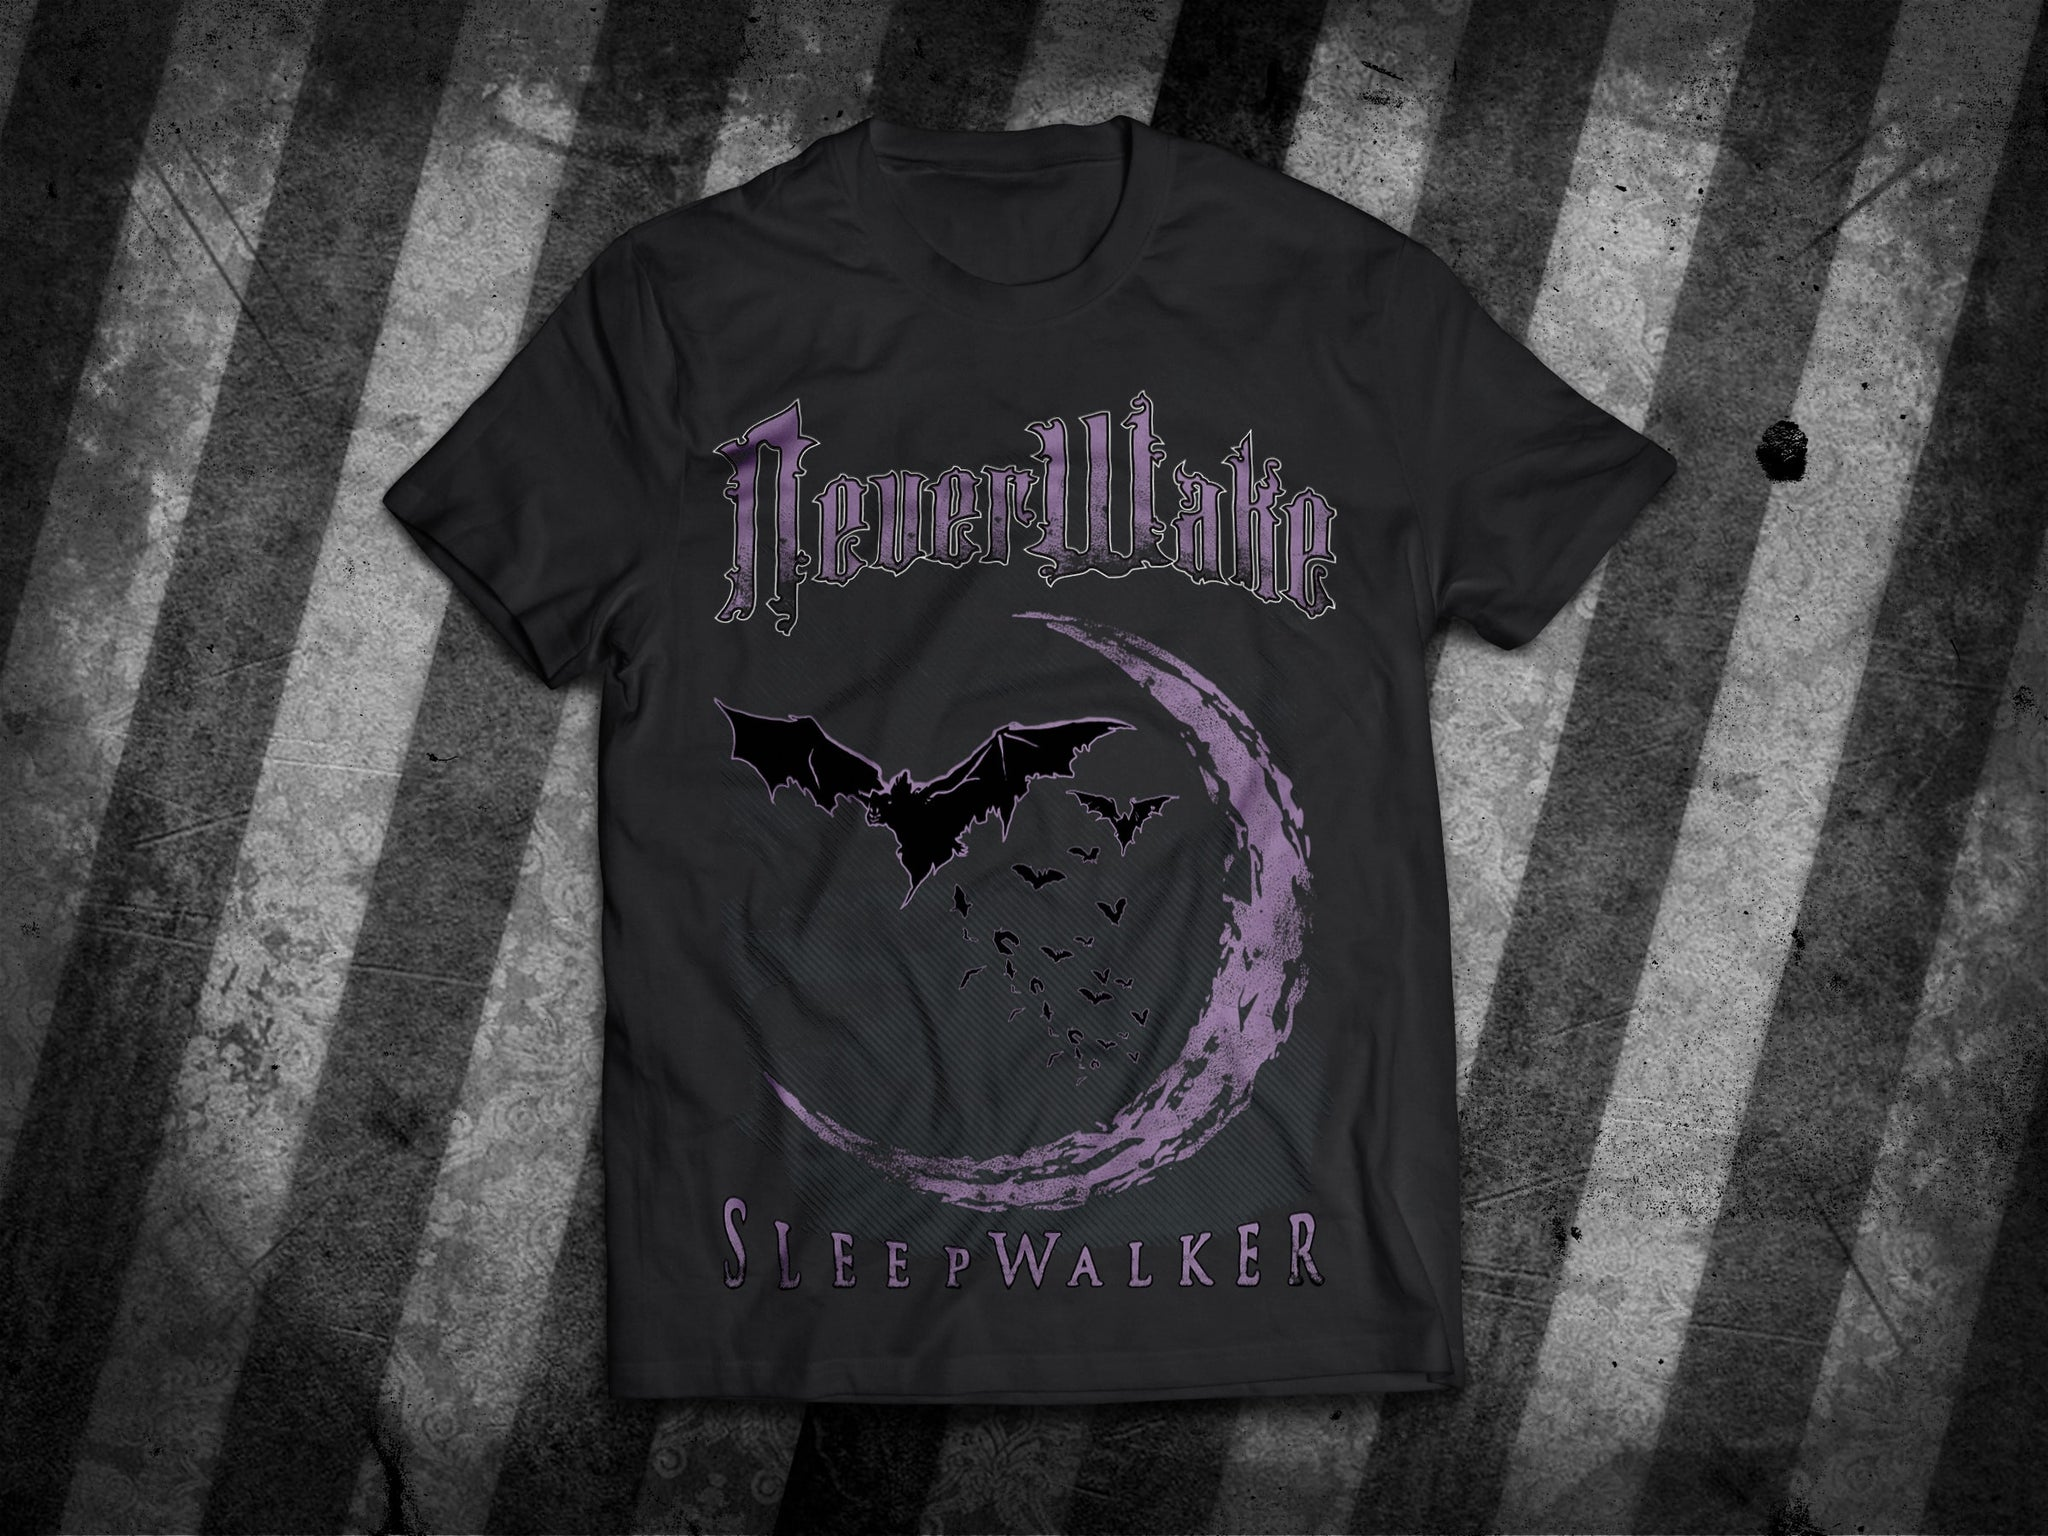 NeverWake SleepWalker T-Shirt